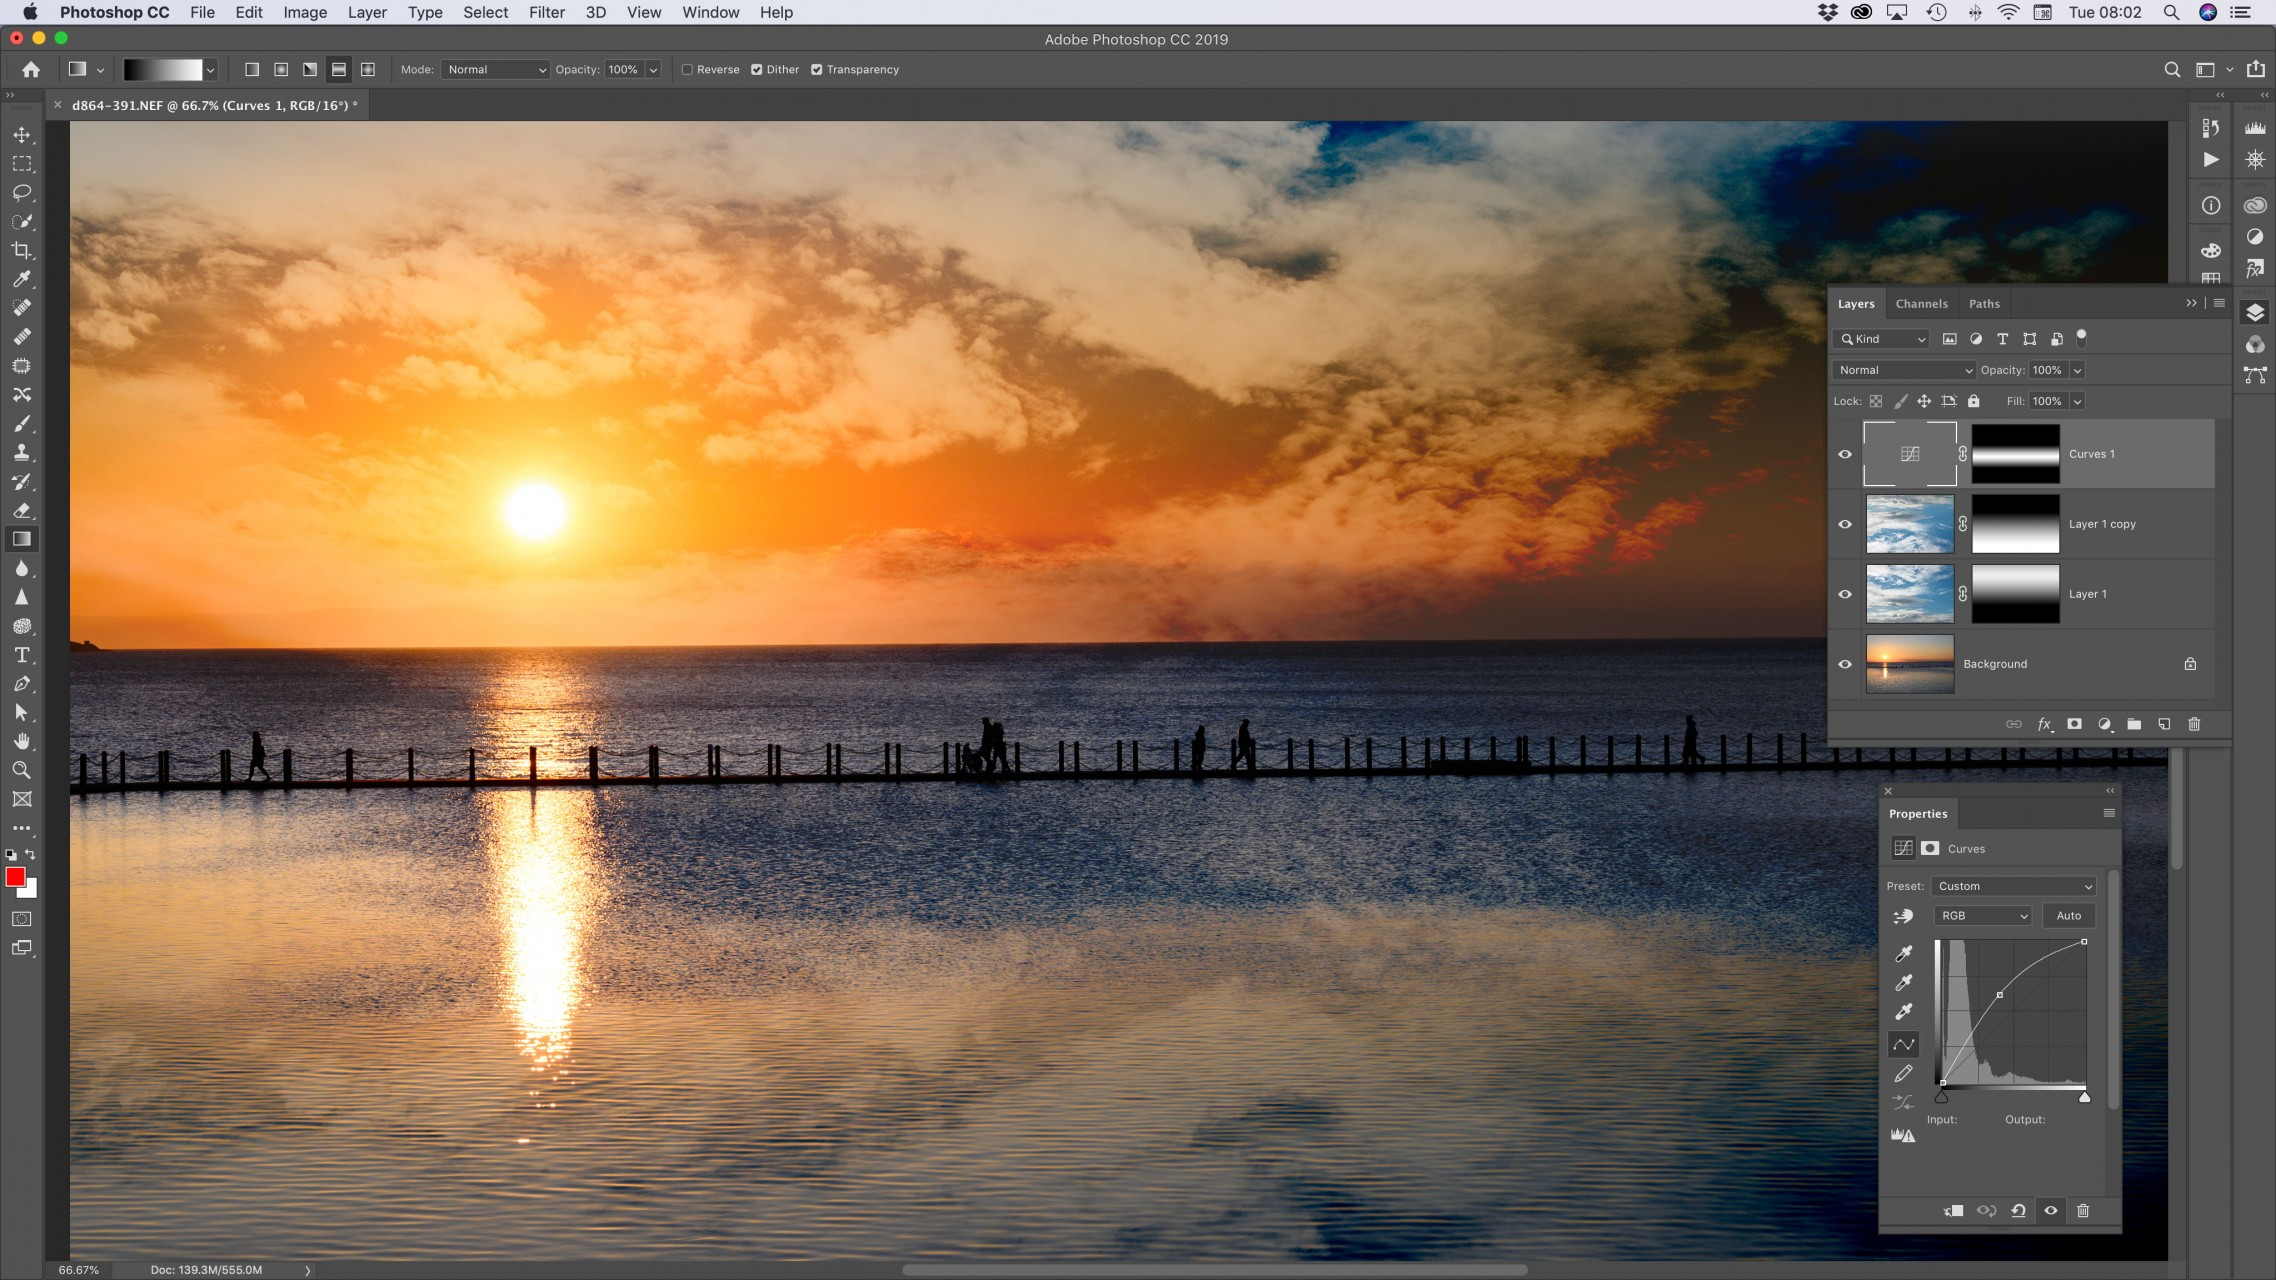 Everything You Need To Know About Adobe Photoshop